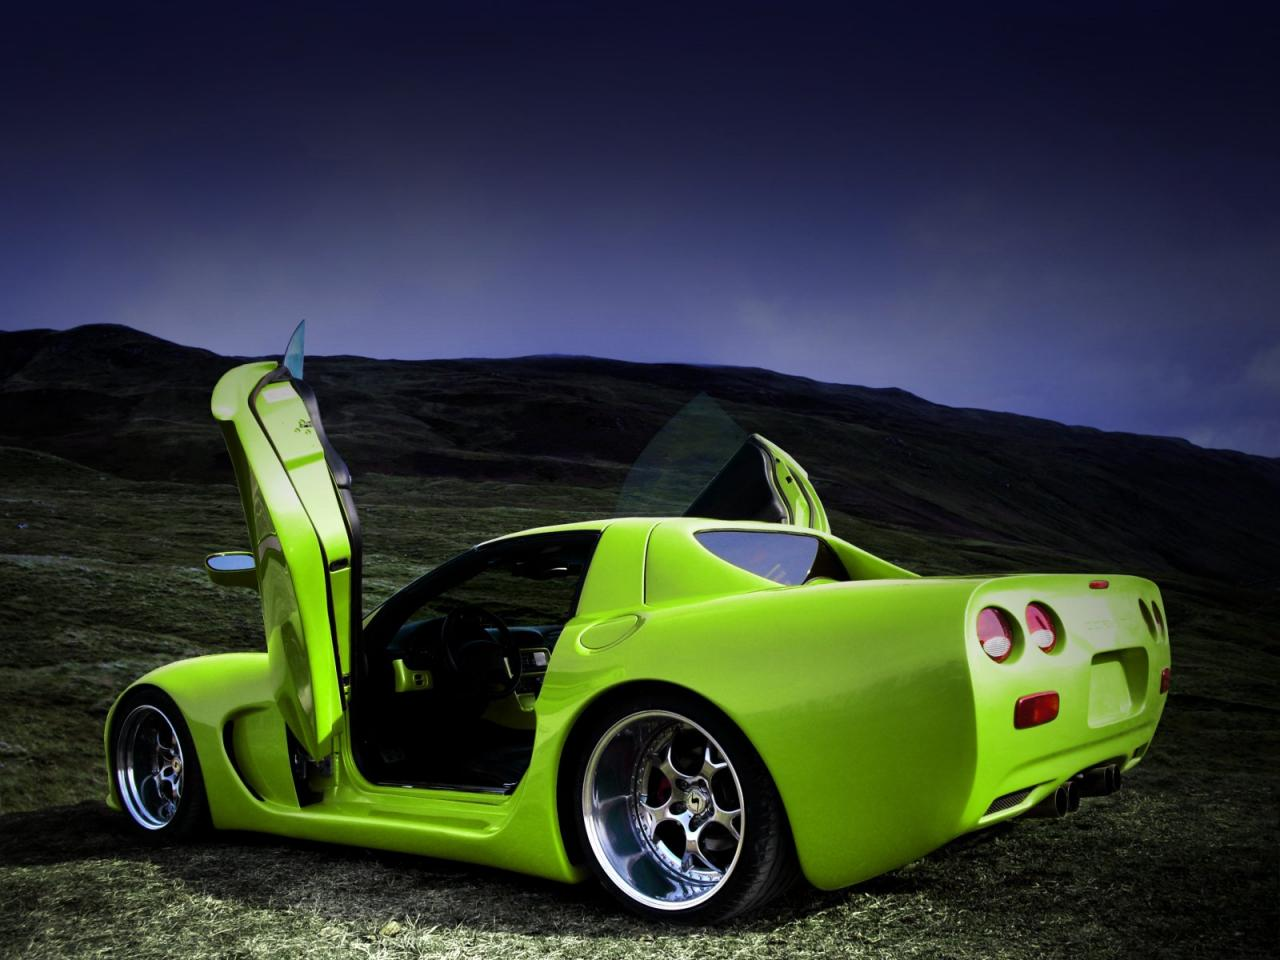 chevrolet corvette c5 by wittera car tuning styling. Black Bedroom Furniture Sets. Home Design Ideas